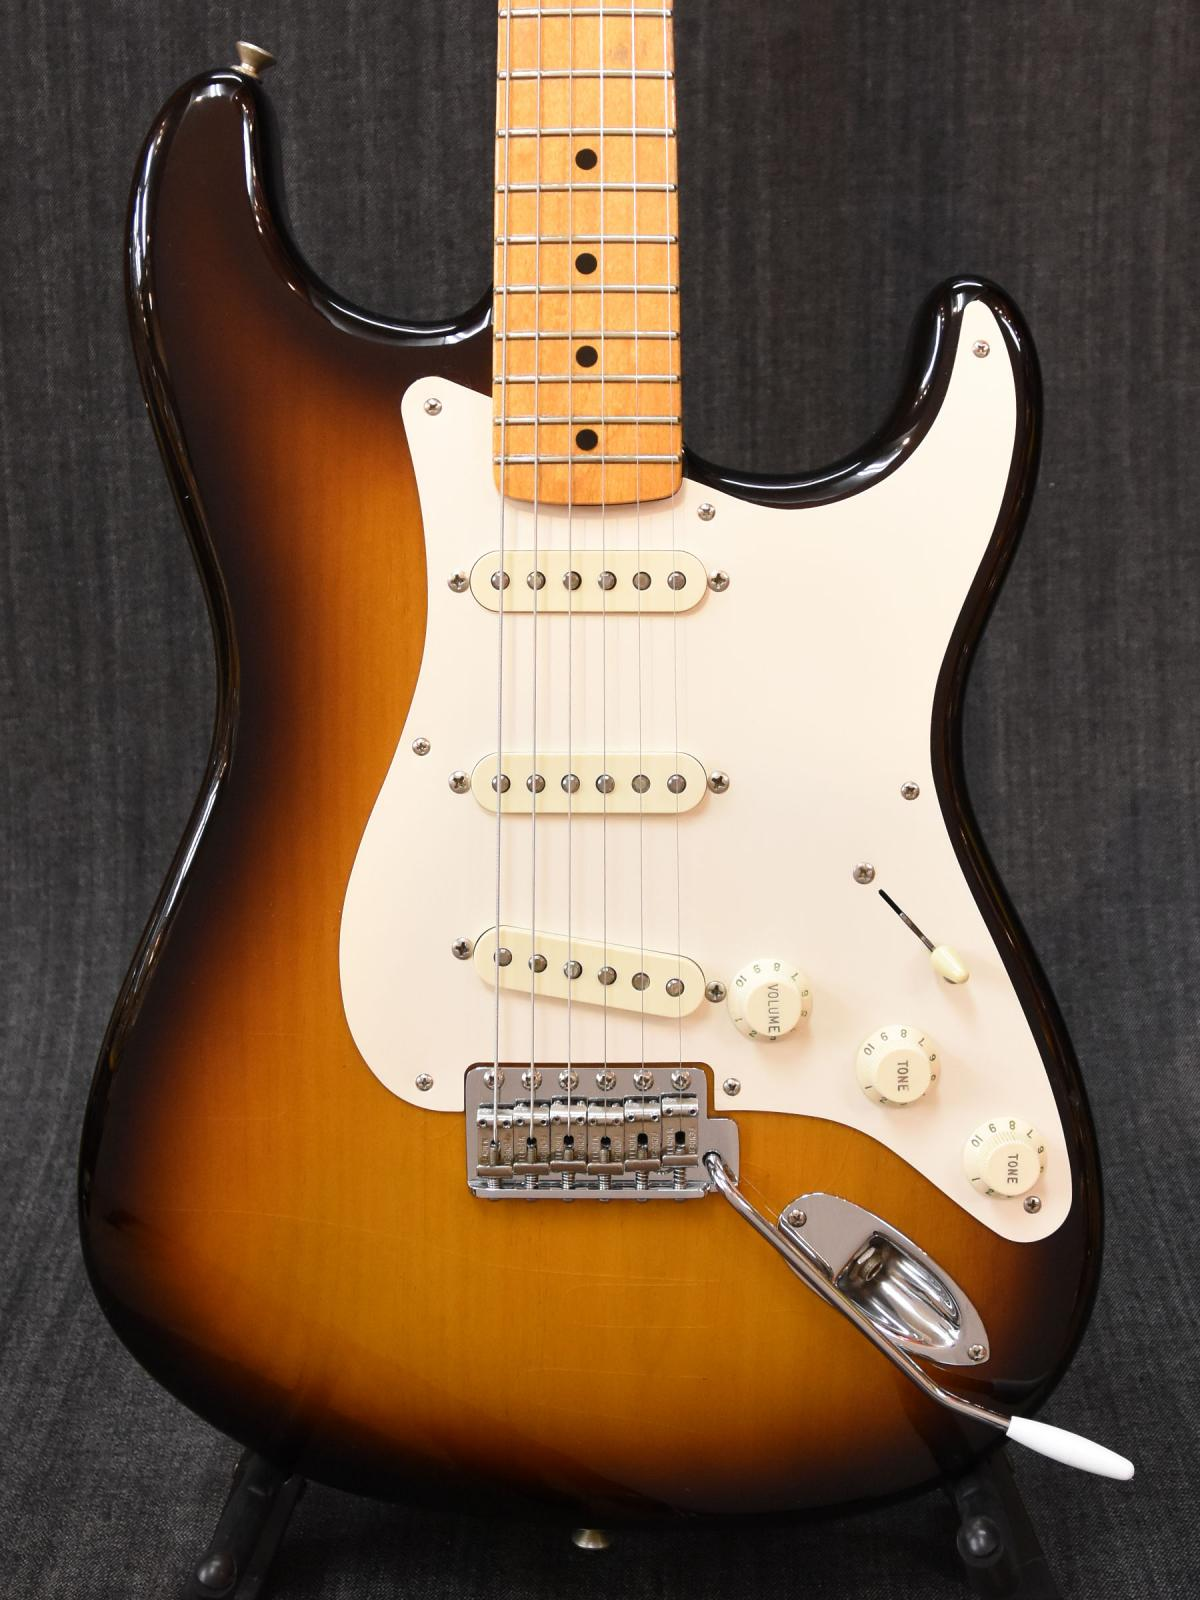 American Vintage 1957 Stratocaster Thin Lacquer